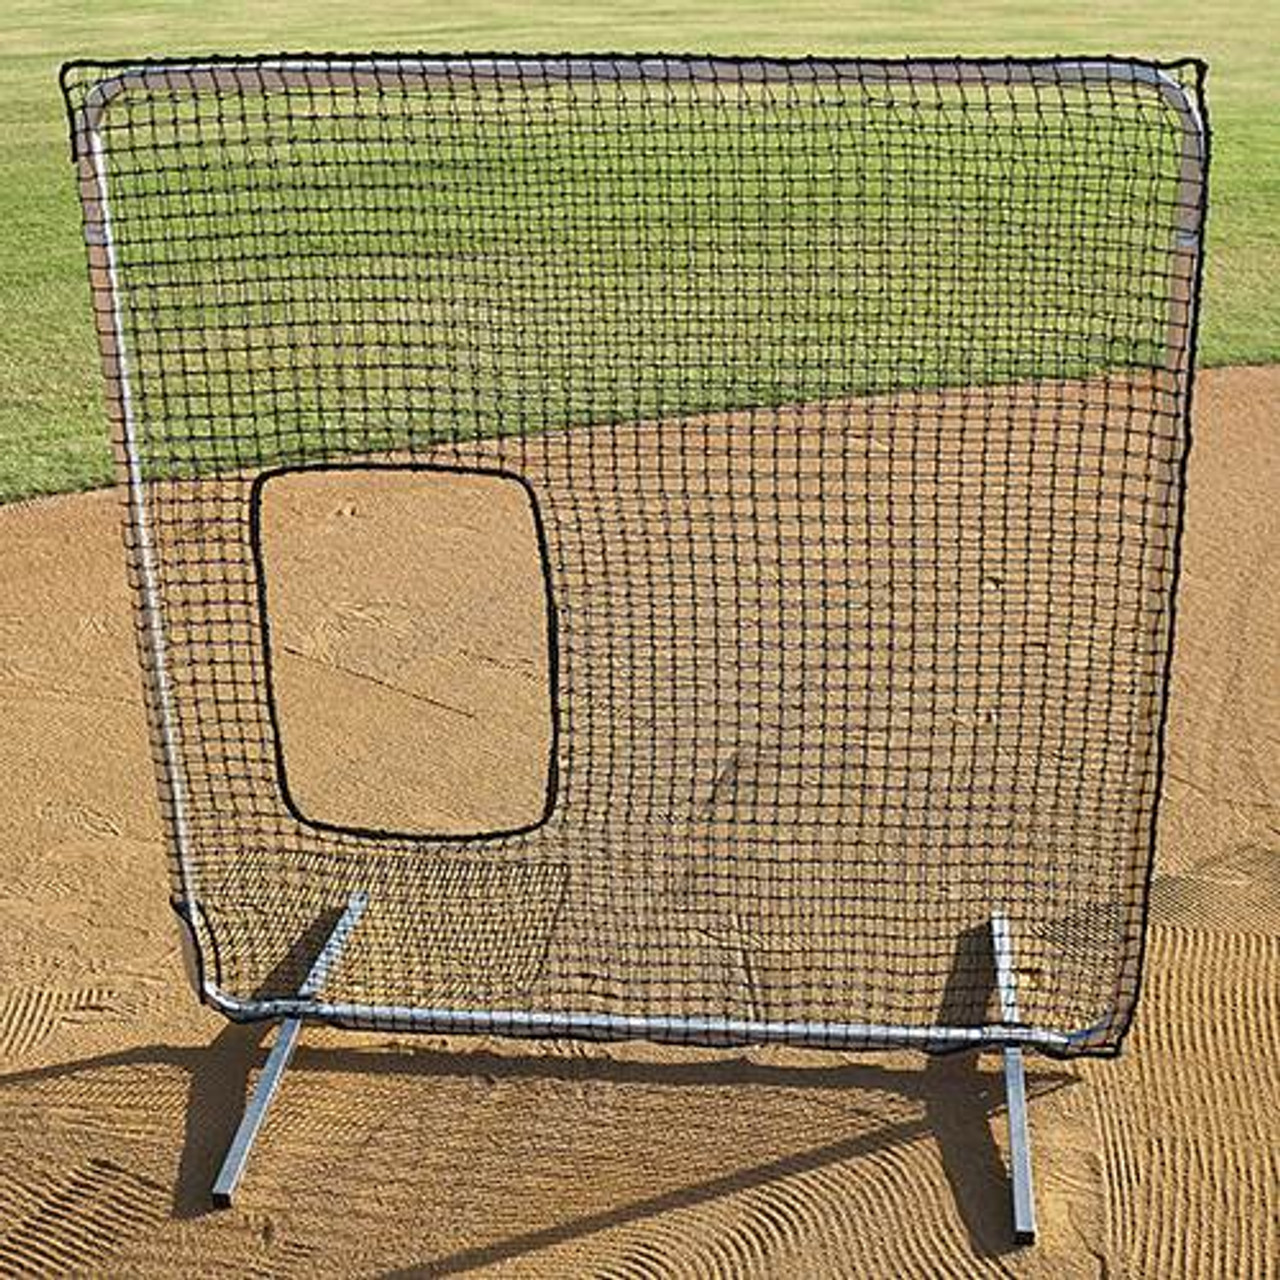 Collegiate Softball Pitchers Protector